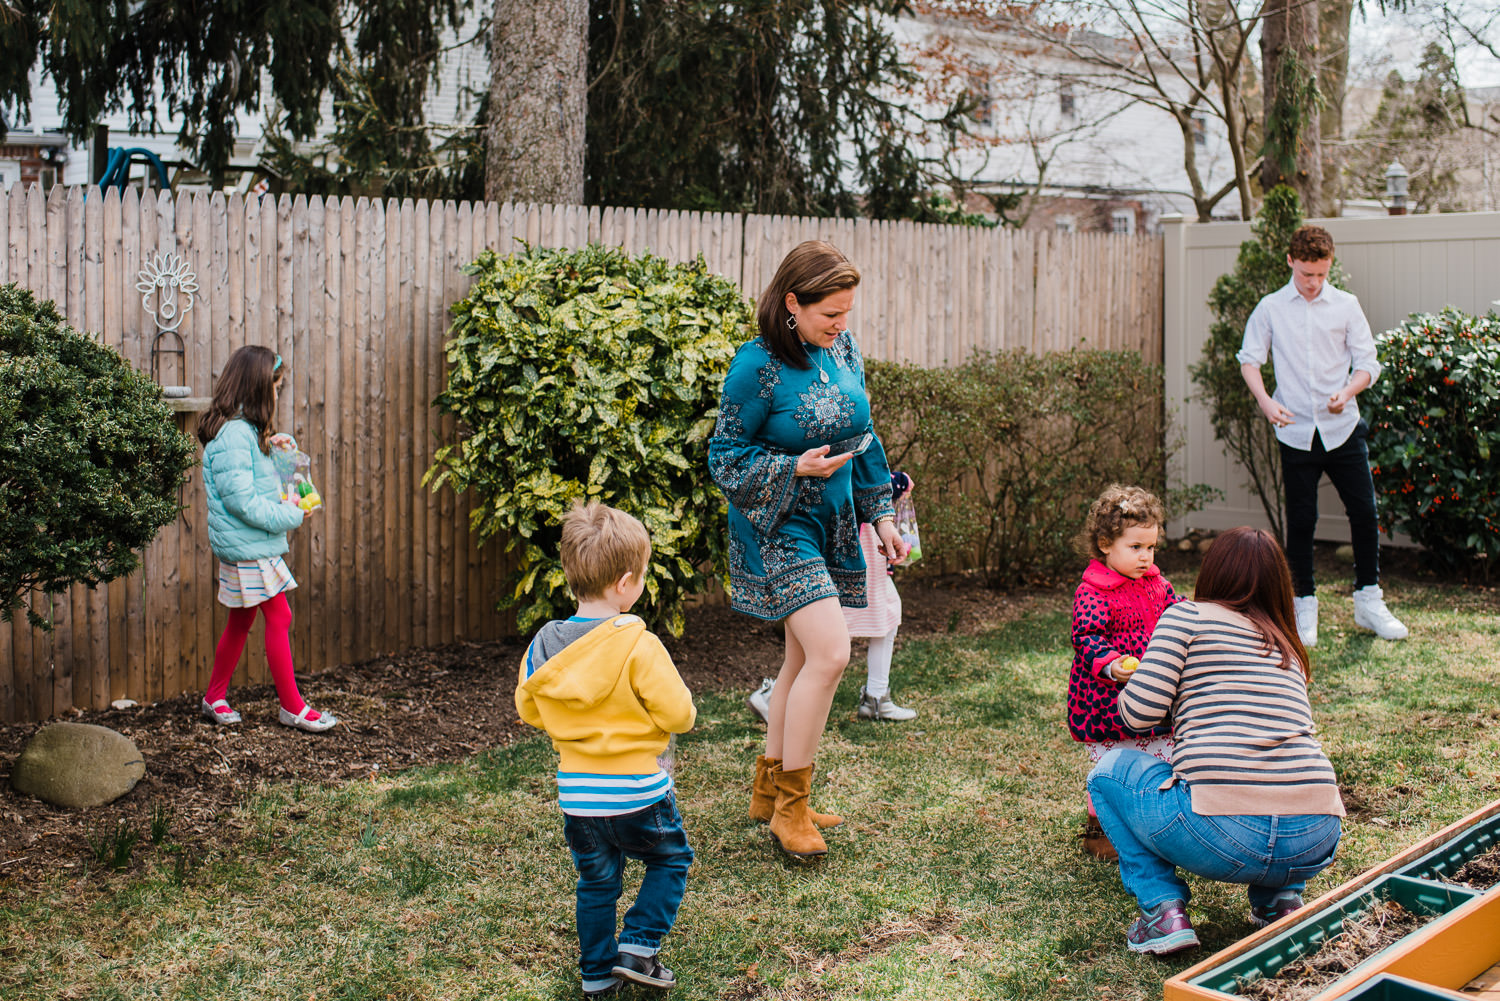 Kids search for Easter eggs in a backyard.